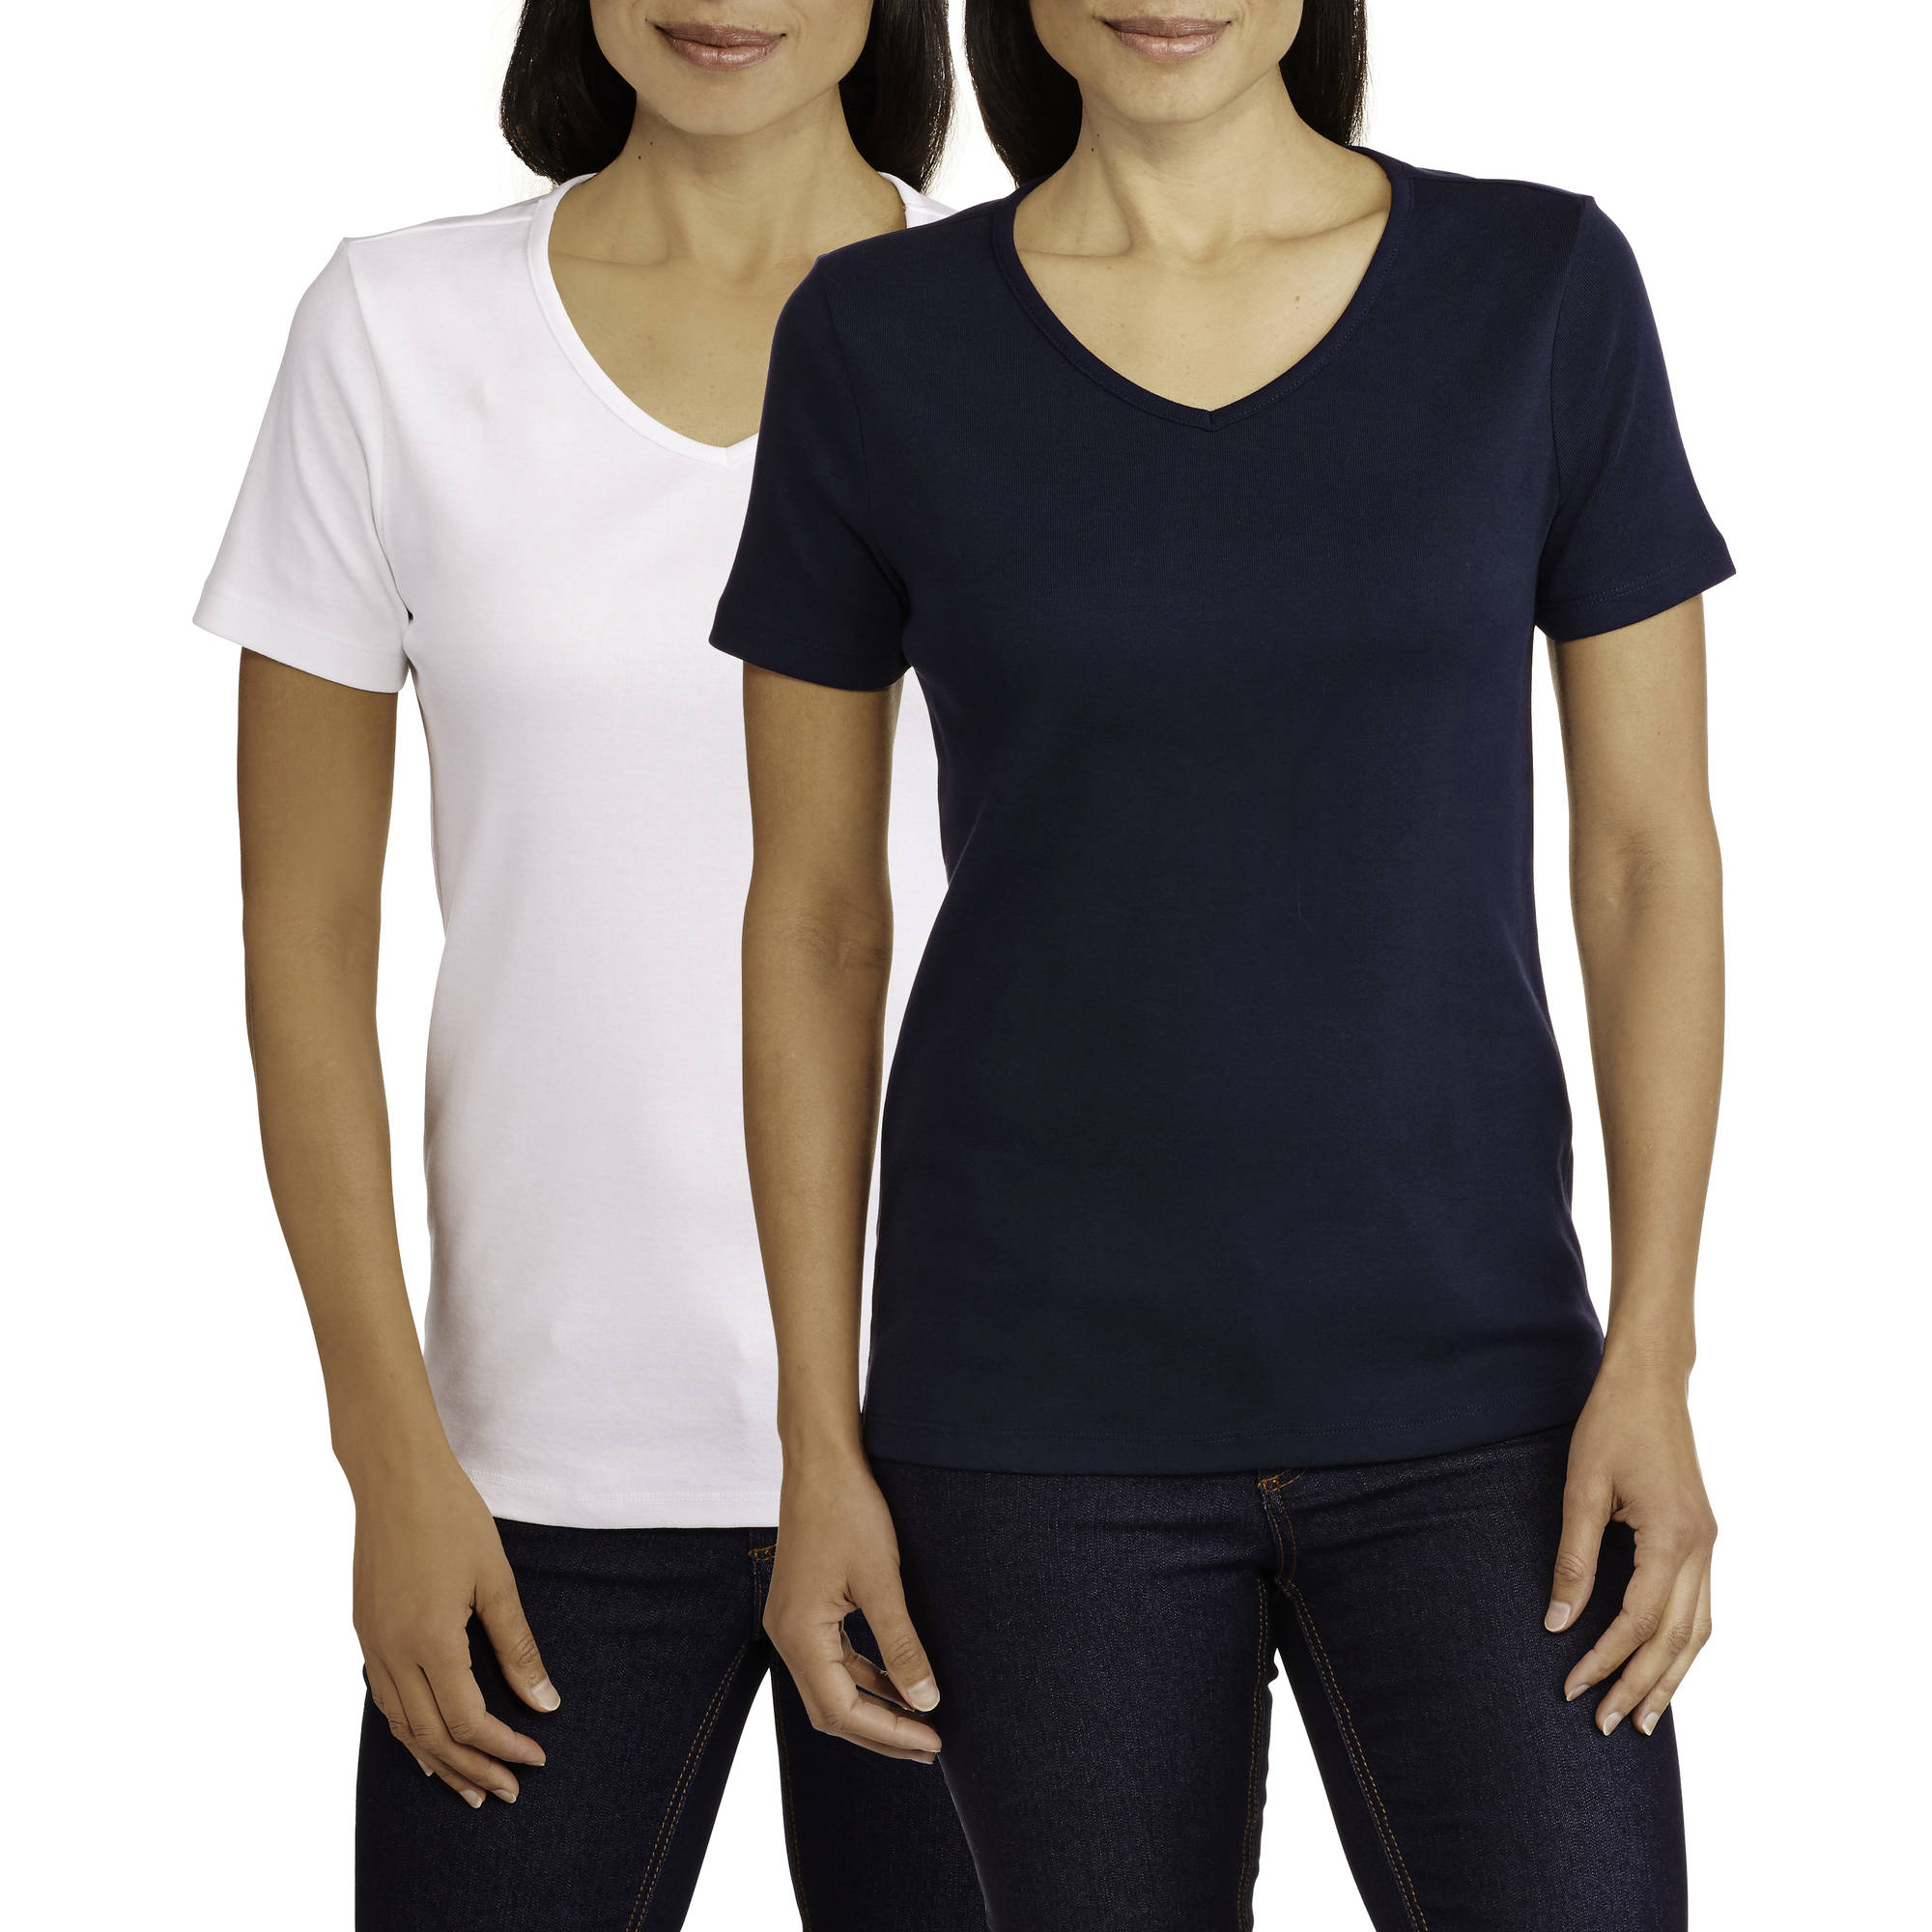 White Stag Women's Short Sleeve  V-Neck T-Shirt, 2 Pack Value Bundle